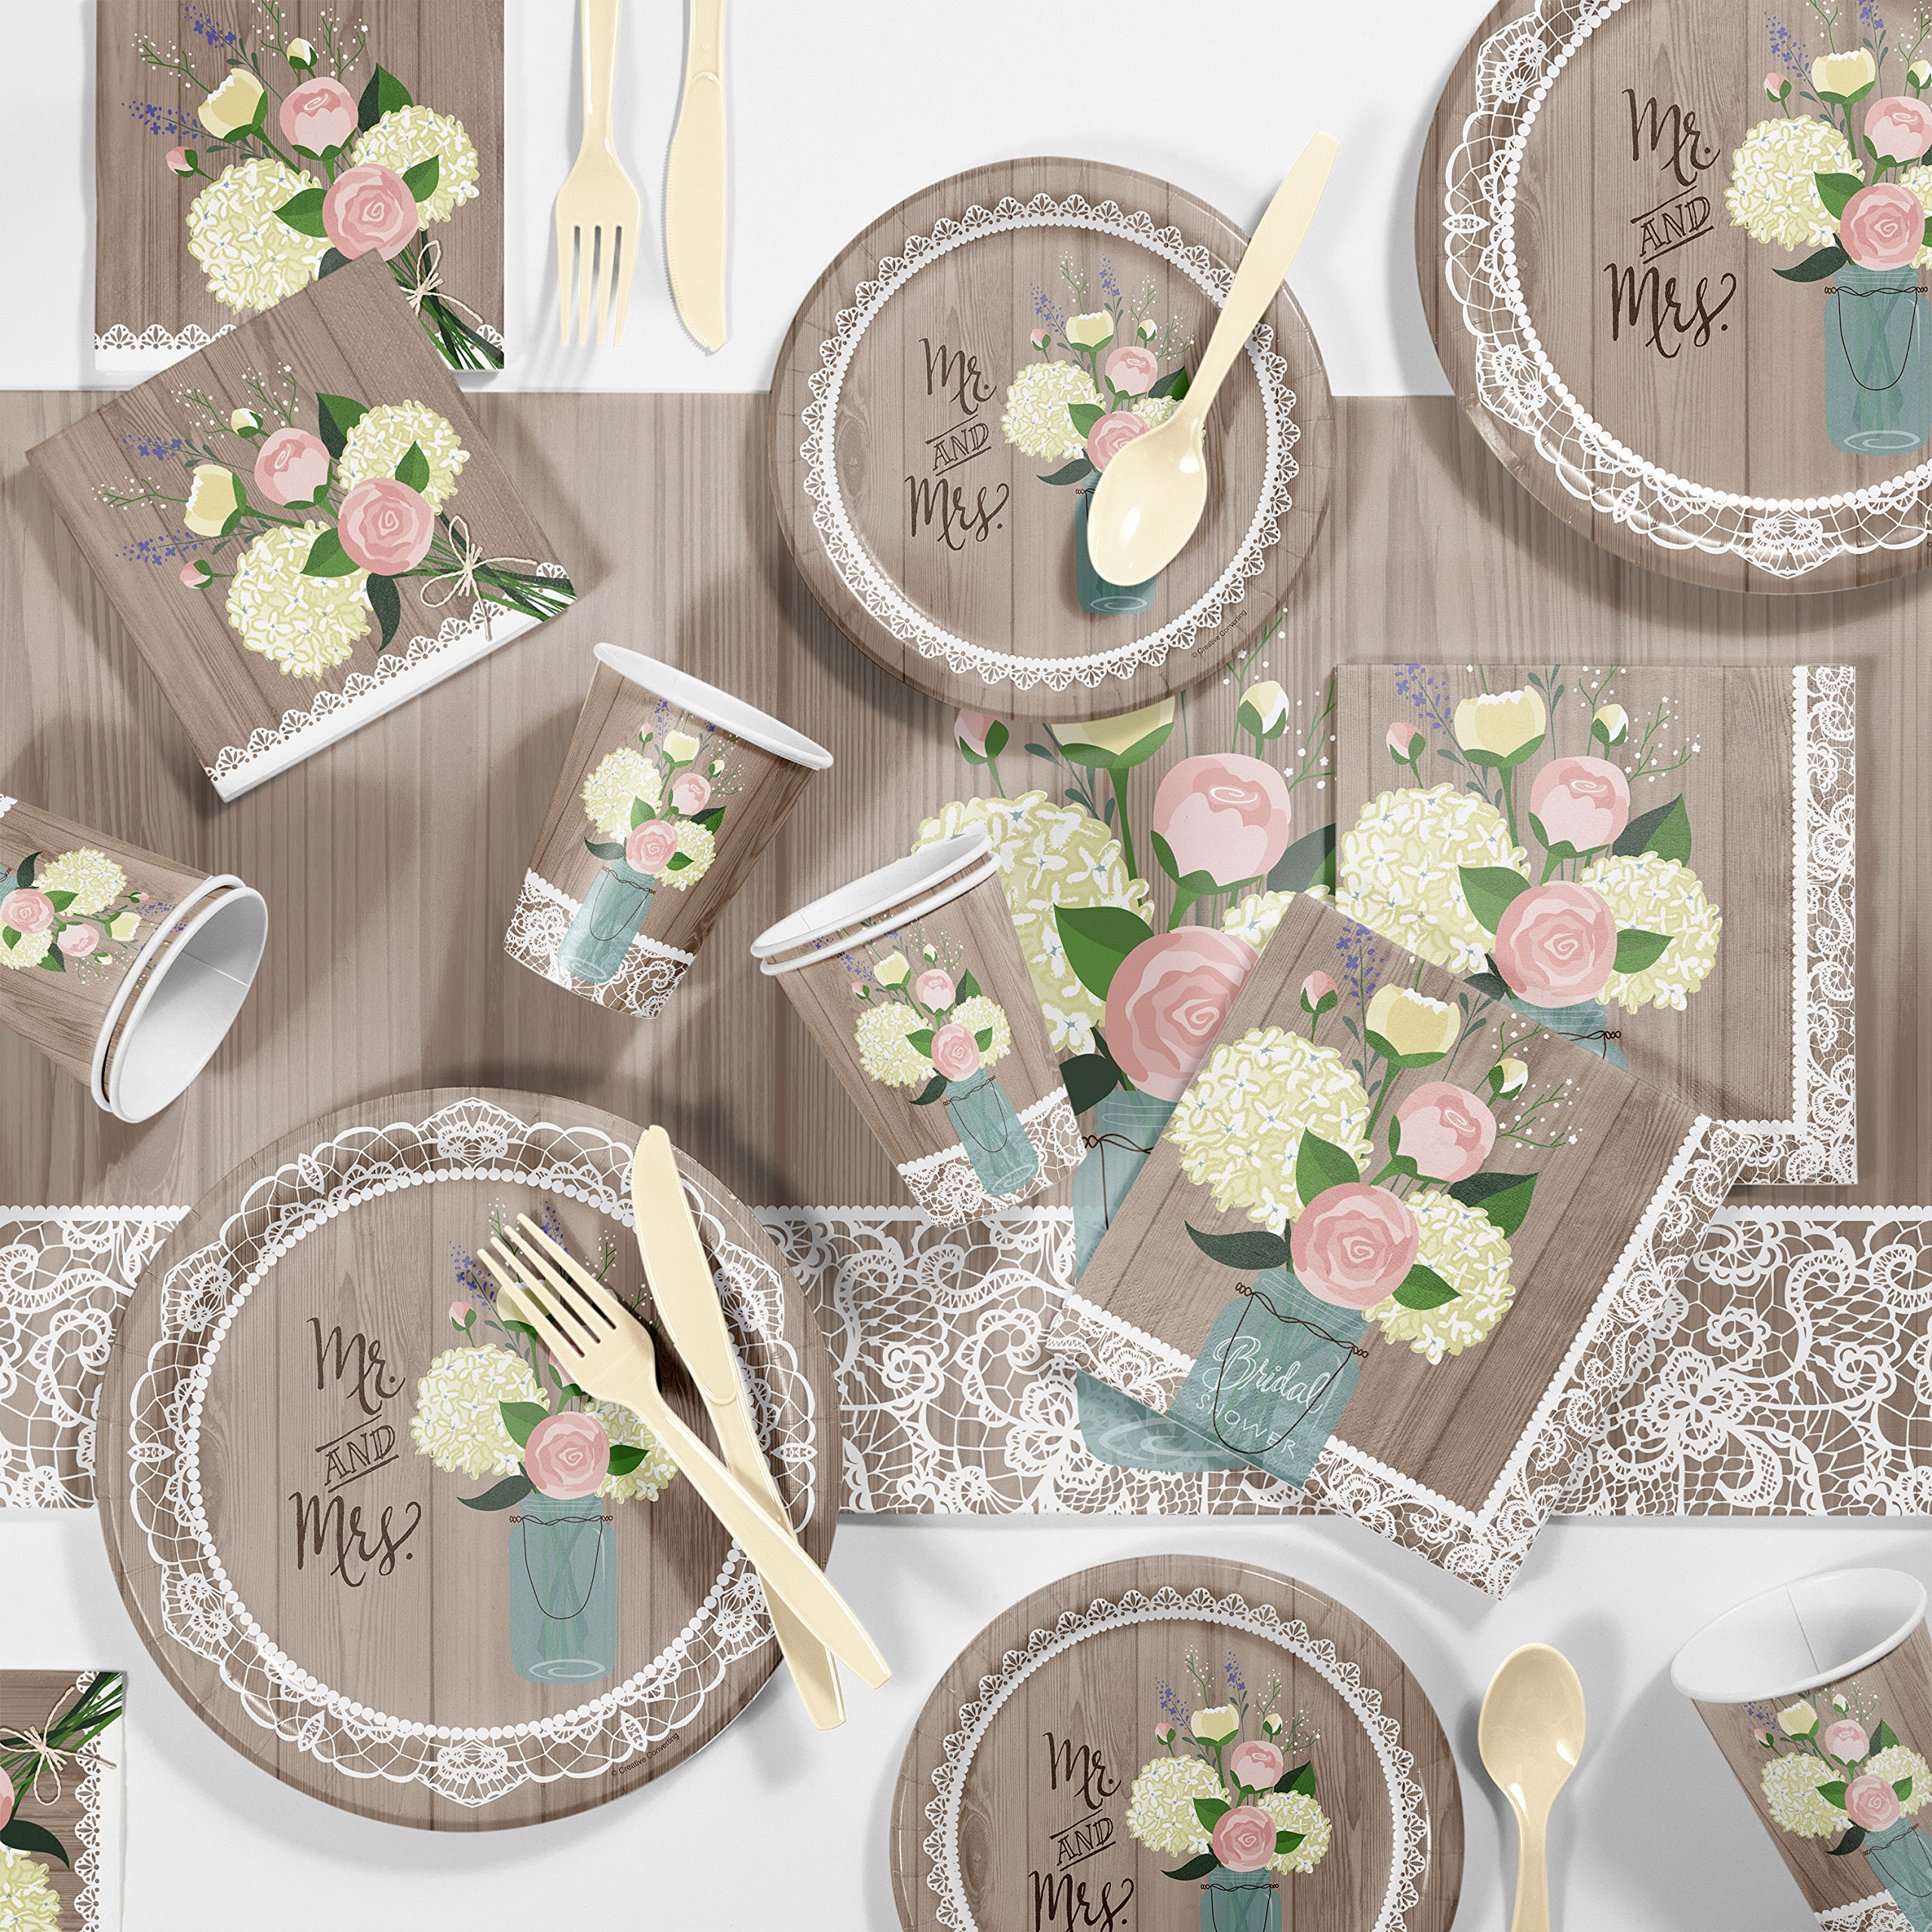 Large Rustic Wedding Bridal Shower Party Supplies Kit, Serves 24